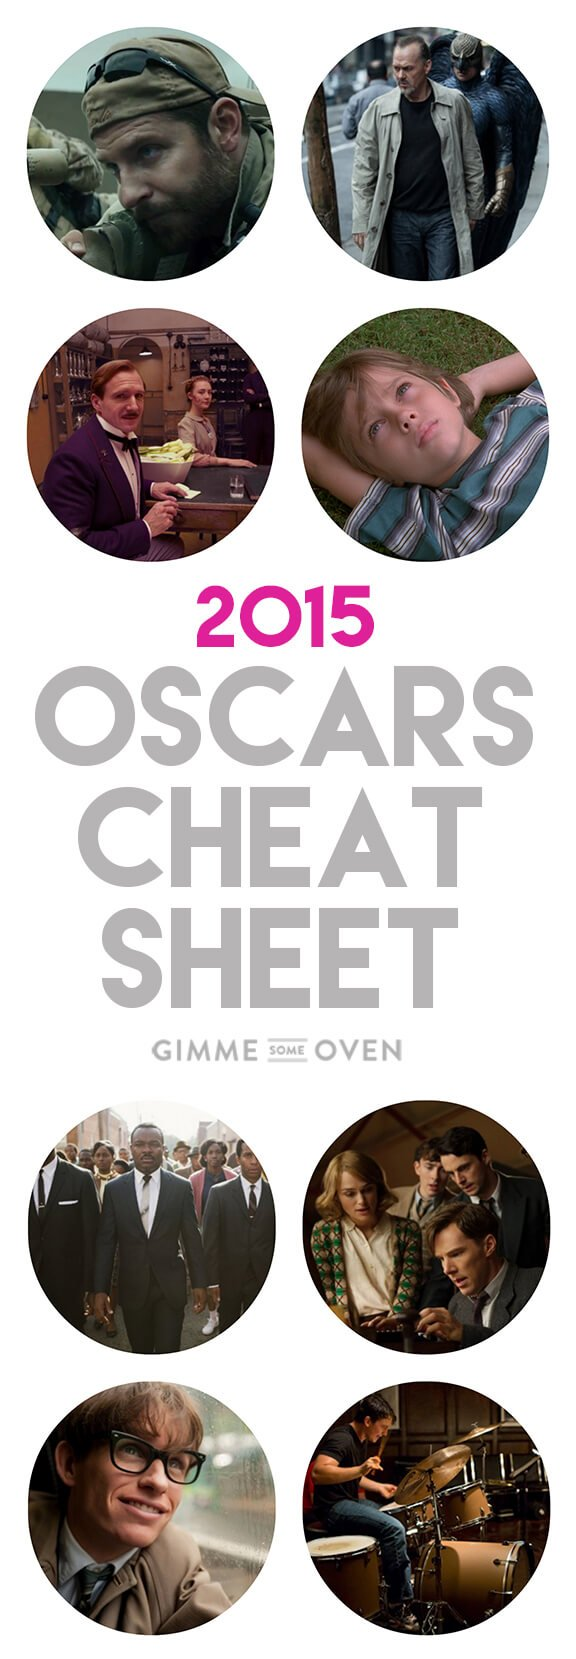 2015 Oscars Cheat Sheet -- fun facts and conversation starters for the Academy Awards | gimmesomeoven.com